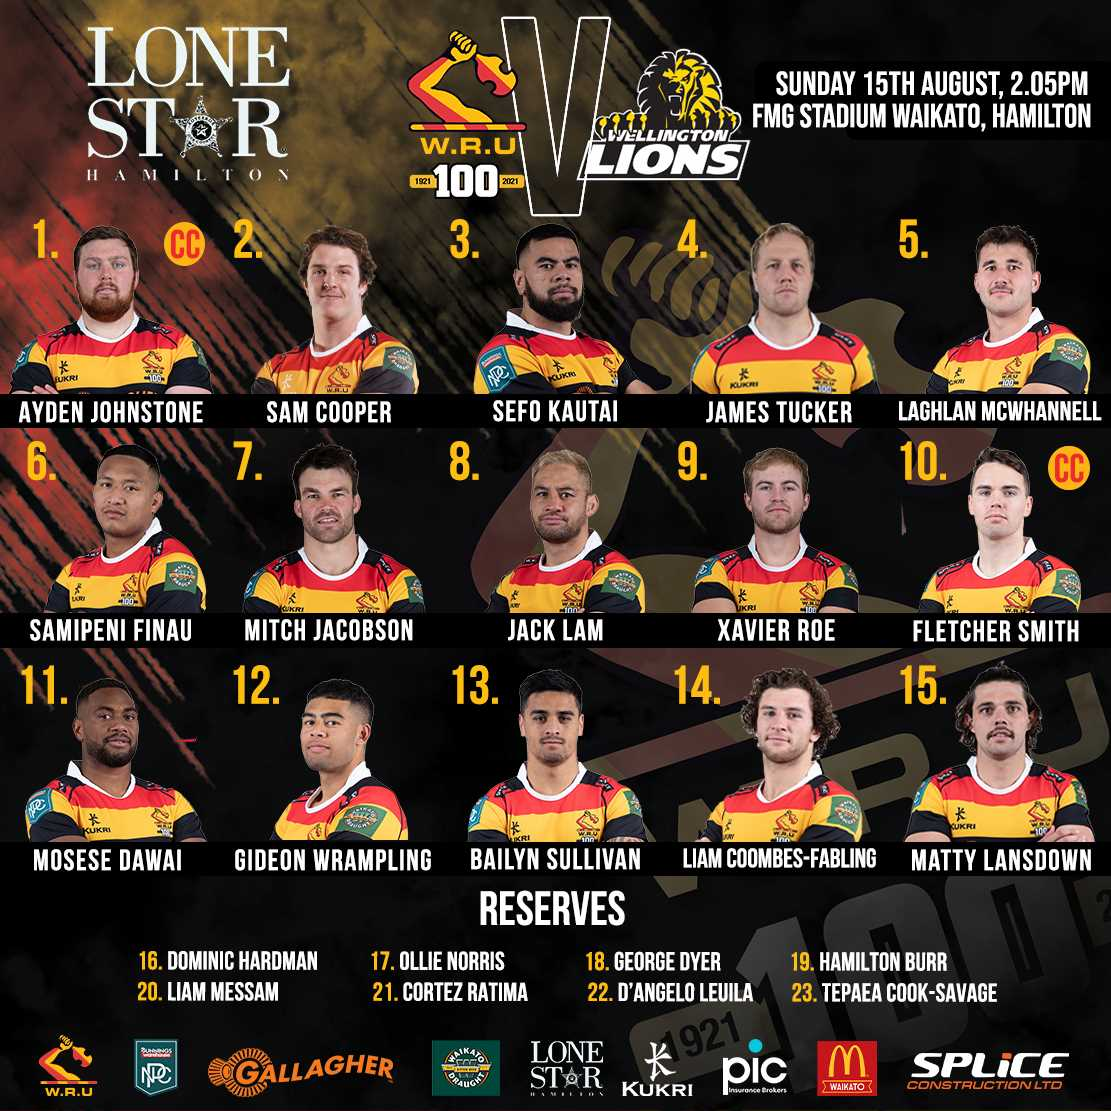 Waikato announce team to take on Wellington Lions for first home game.